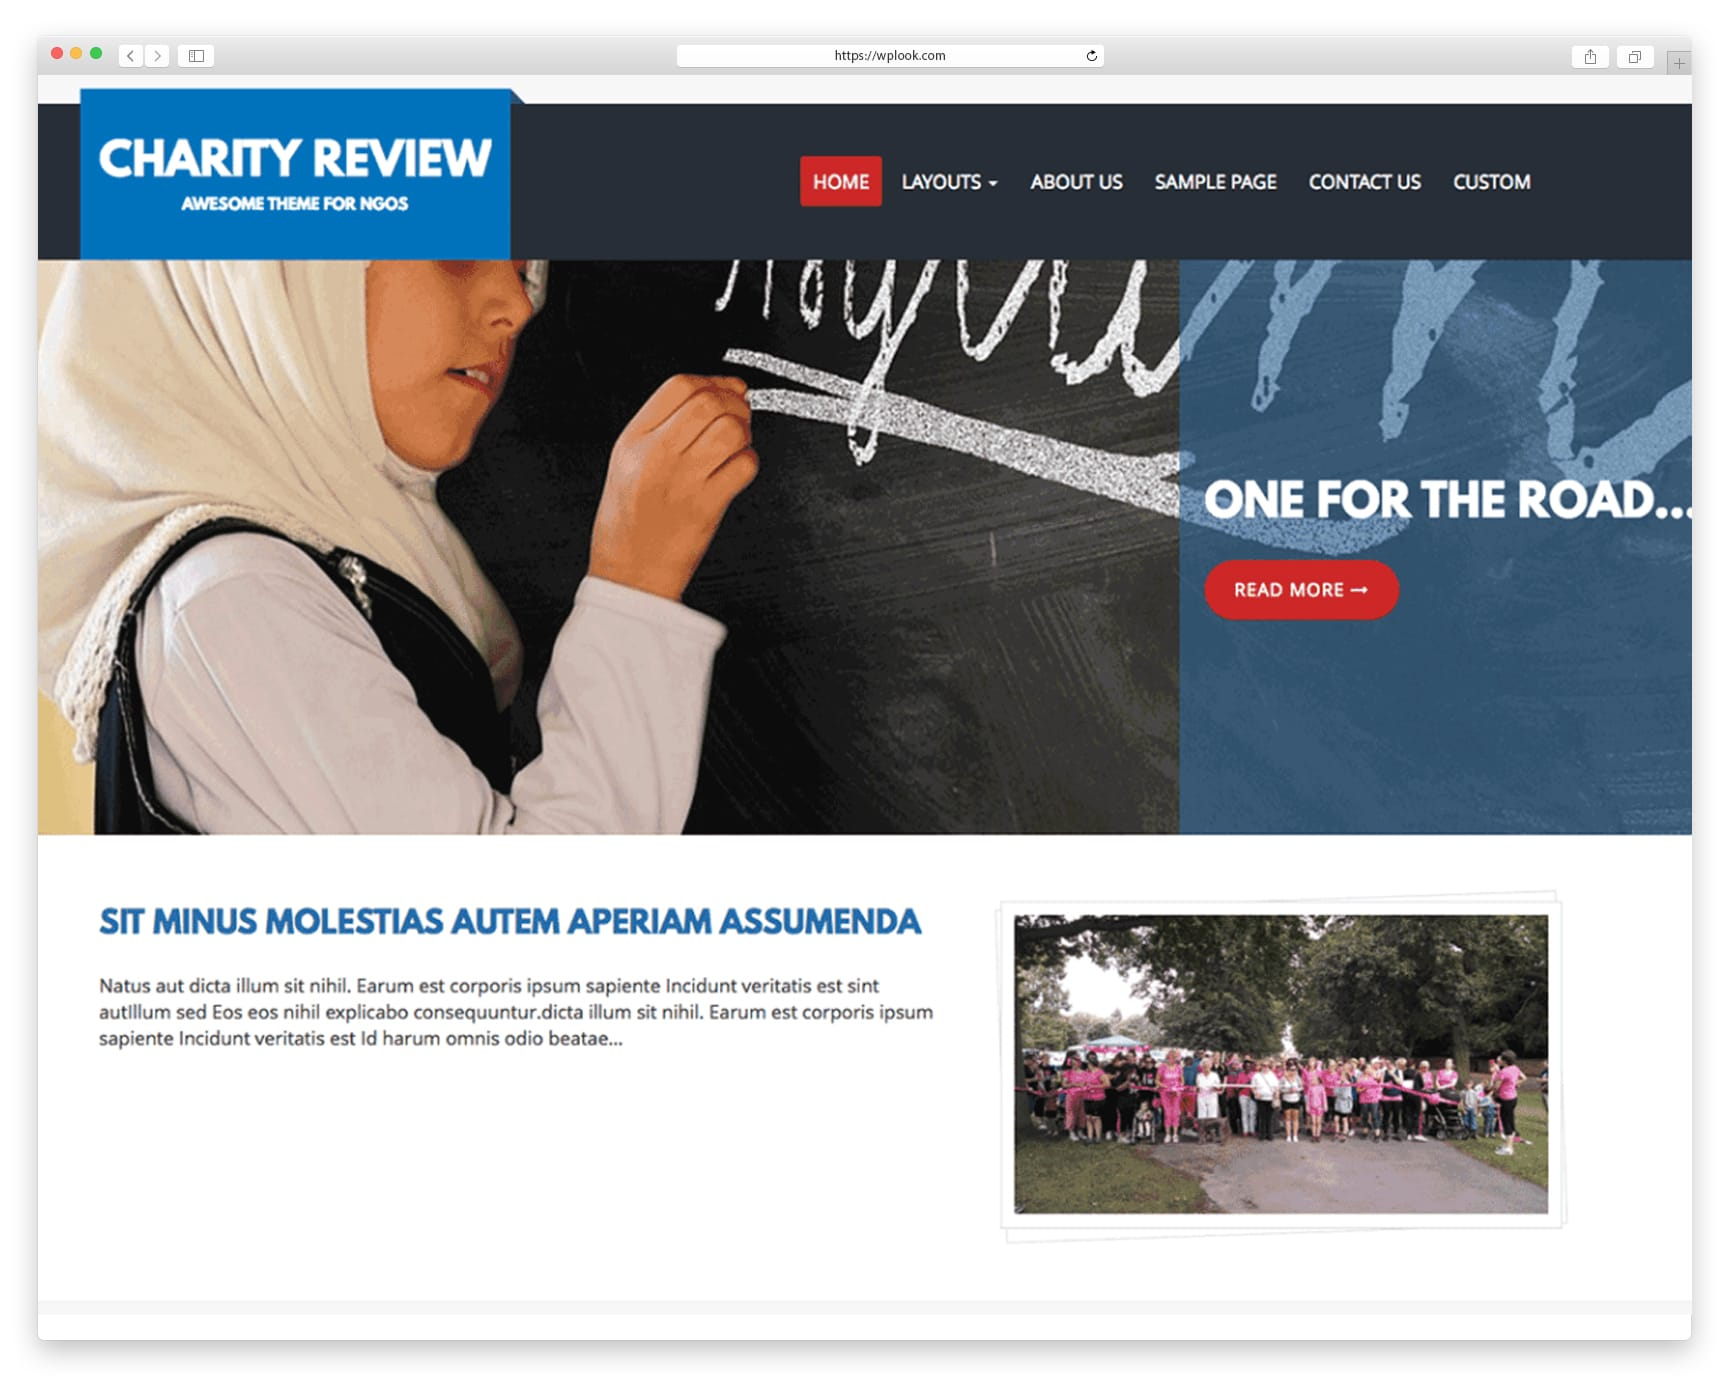 Free WordPress theme created for Non-profit organizations